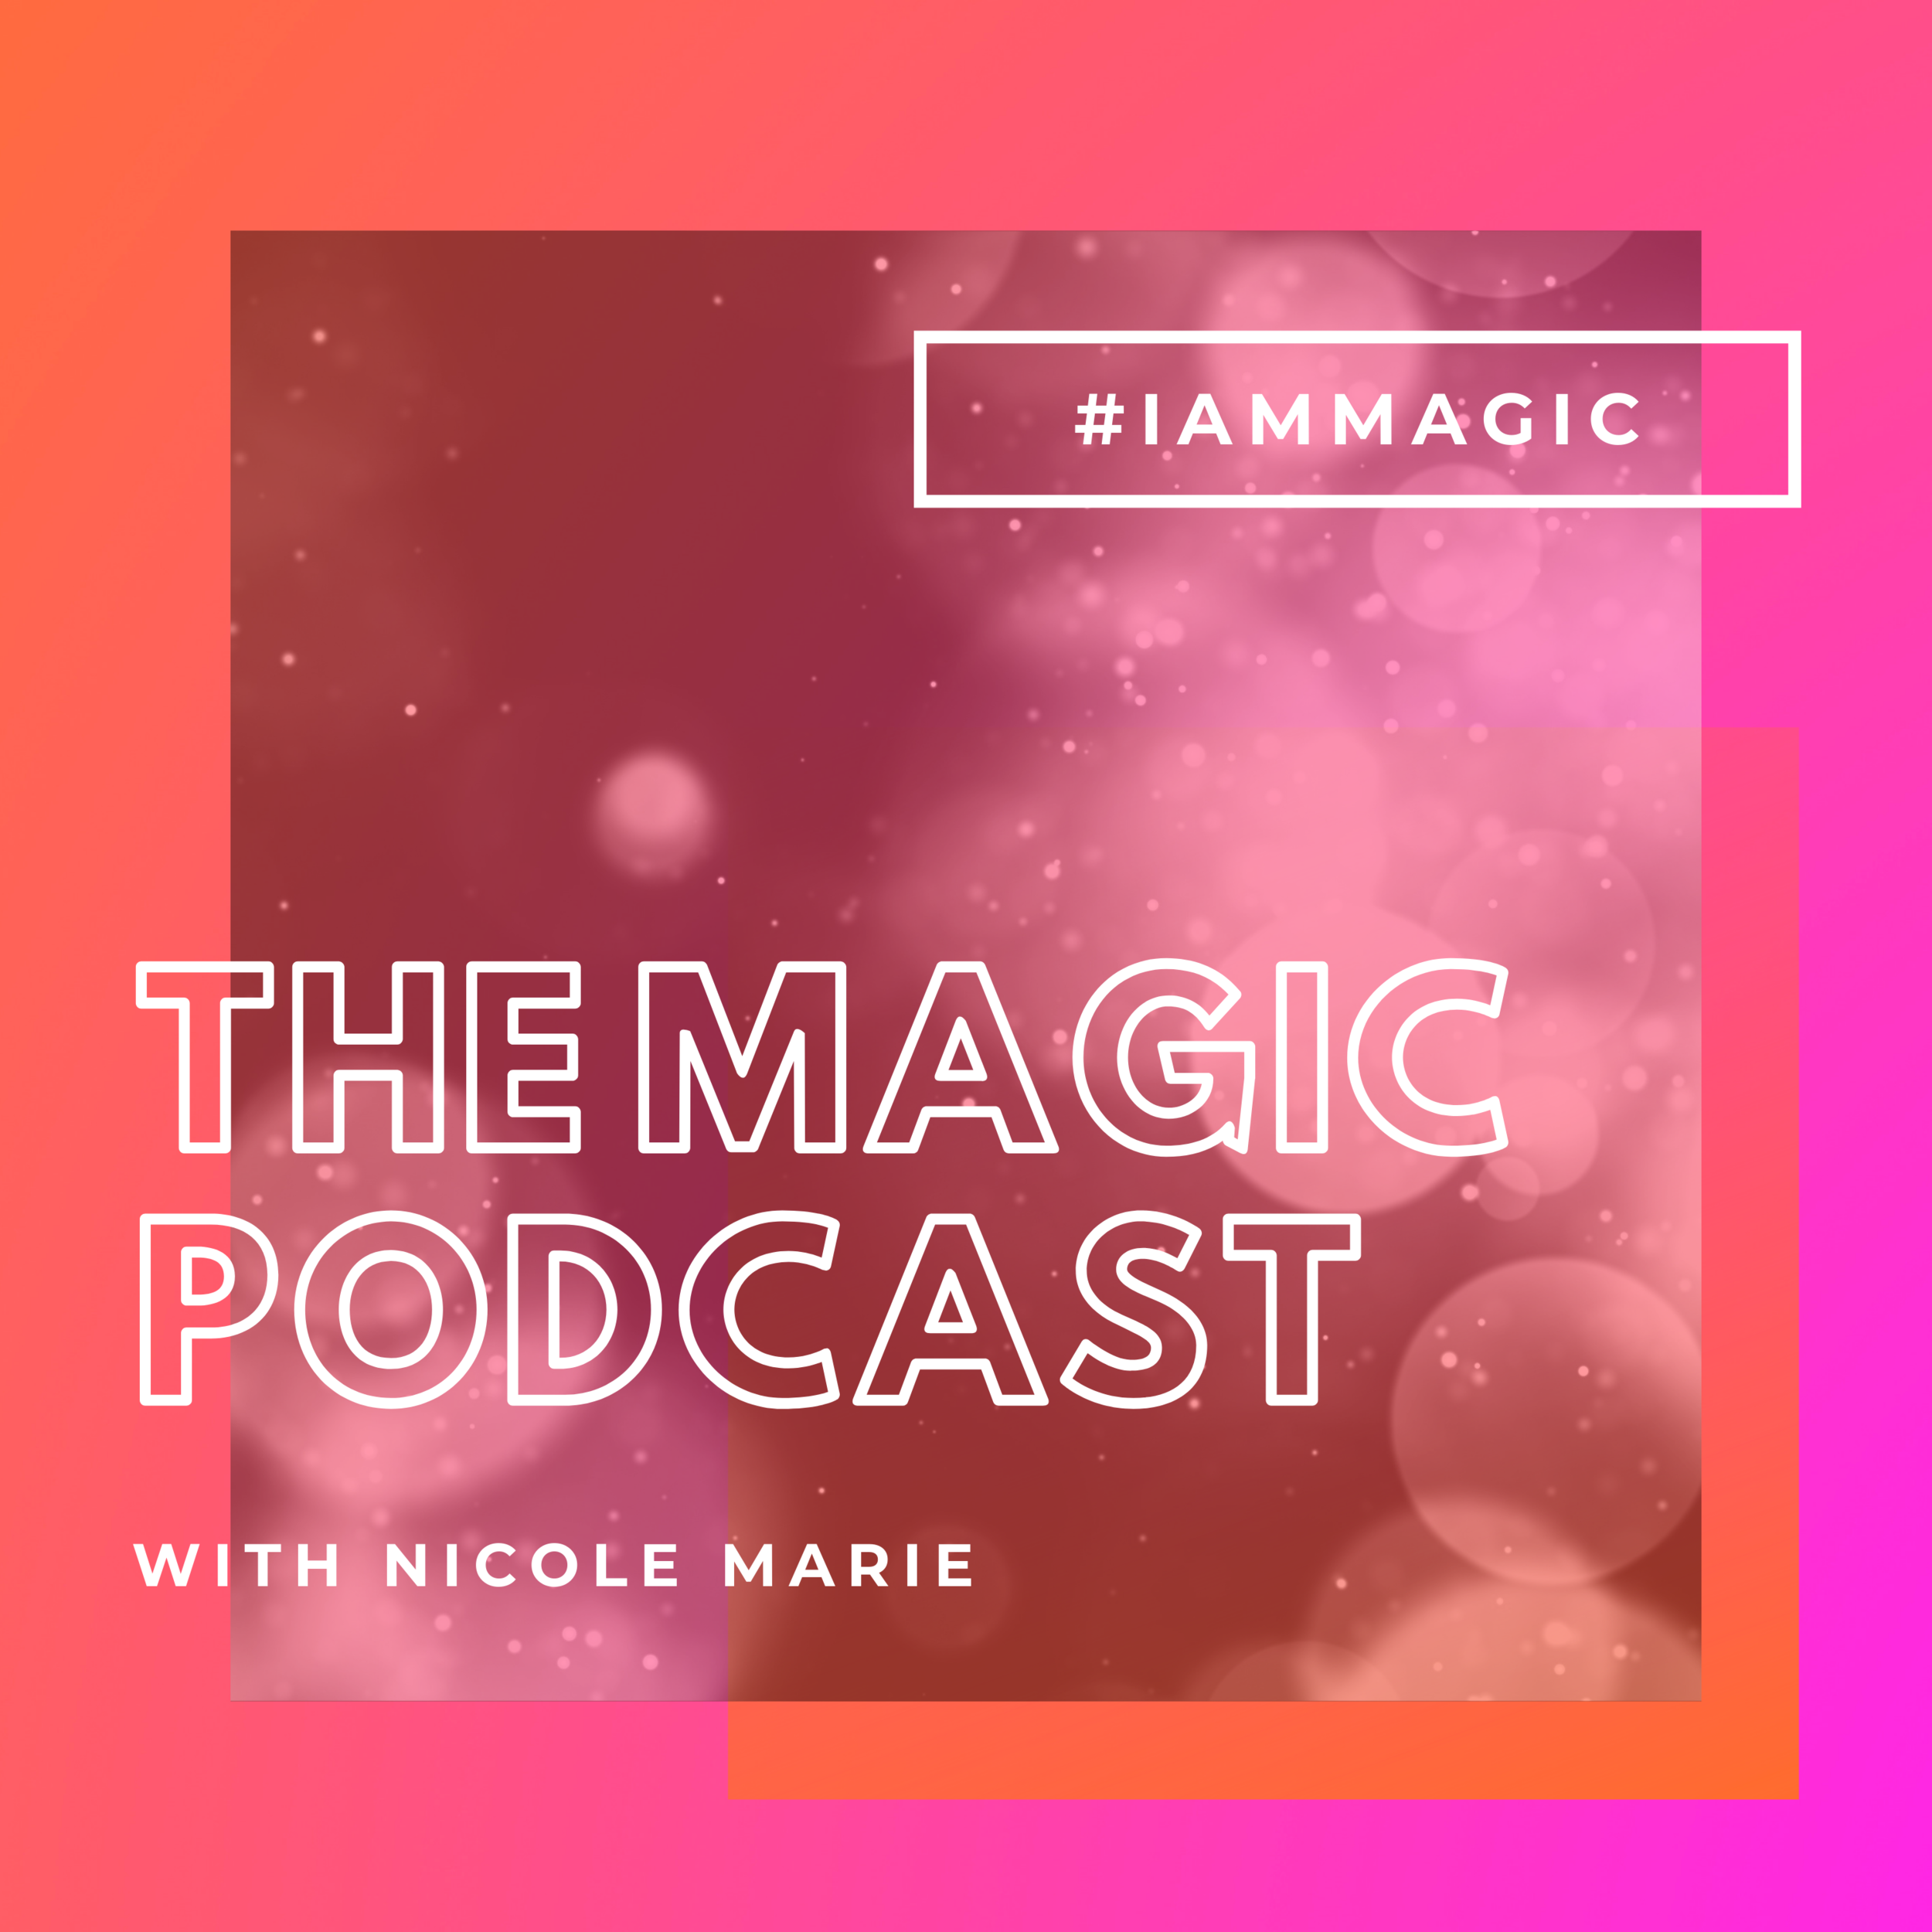 Subscribe to the Magic Podcast -  The Magic Podcast is teaching the tools of transformation and how to live everyday magic. Join Nicole Marie a Transformation Catalyst + Coach every week for the Weekly Moon Cycle Forecast to learn how to empower your life with the MOON. Along with special episodes exploring the tools of Mythical Psychology, Archetypal Astrology, and Ritual Storytelling to embody a life of MAGIC!